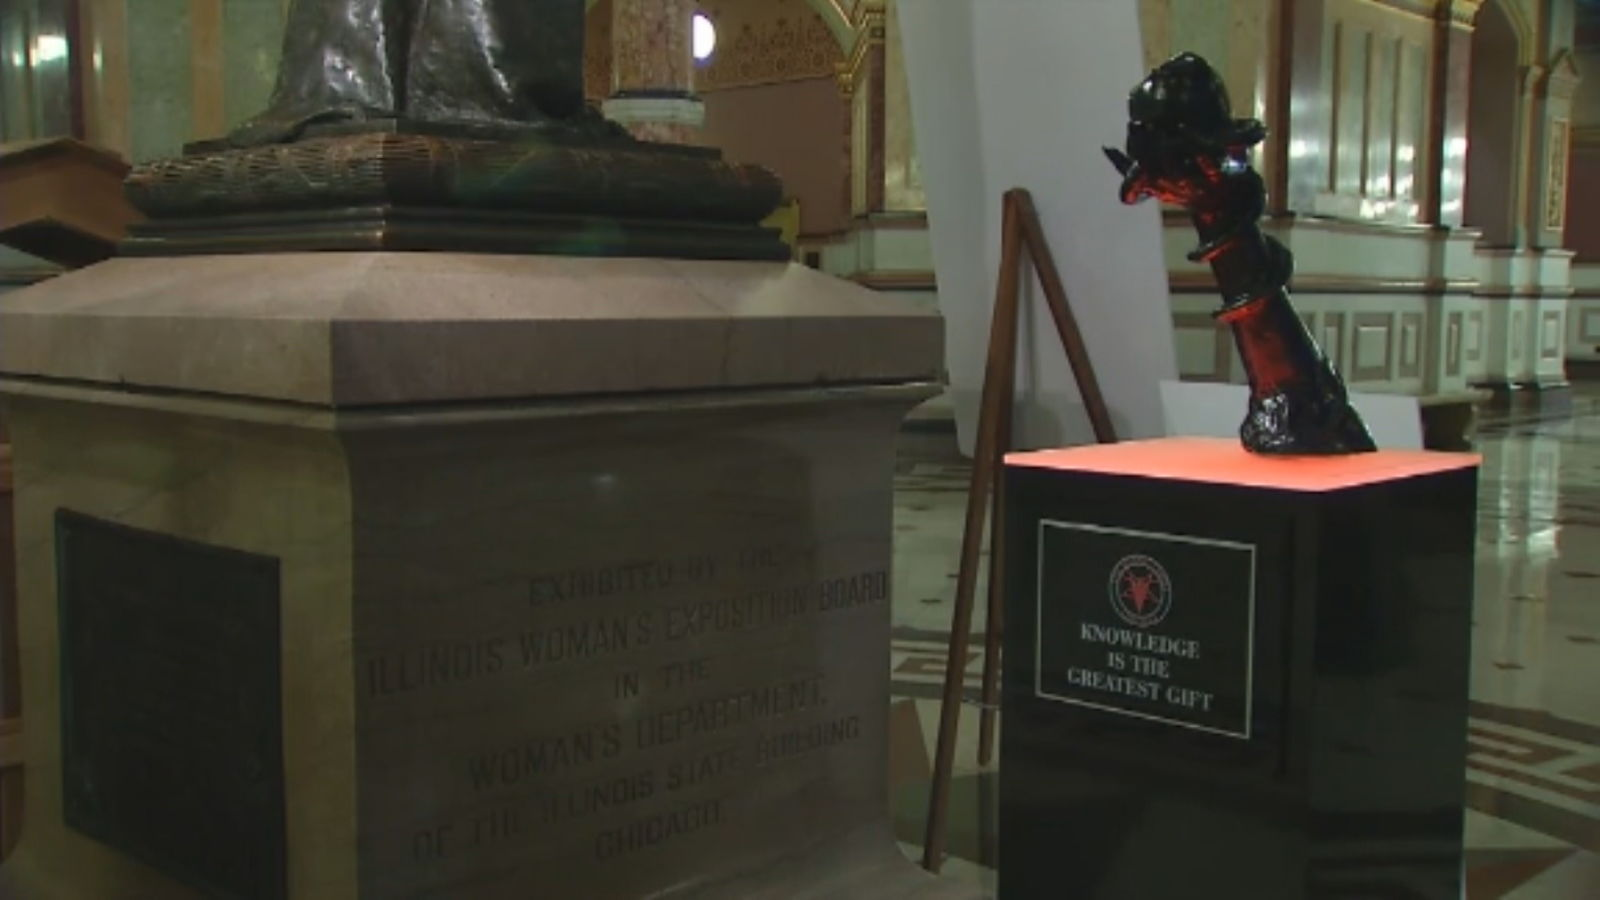 A local chapter of The Satanic Temple has been allowed to place a statue in the Illinois Capitol alongside holiday displays of a Nativity scene and a menorah.